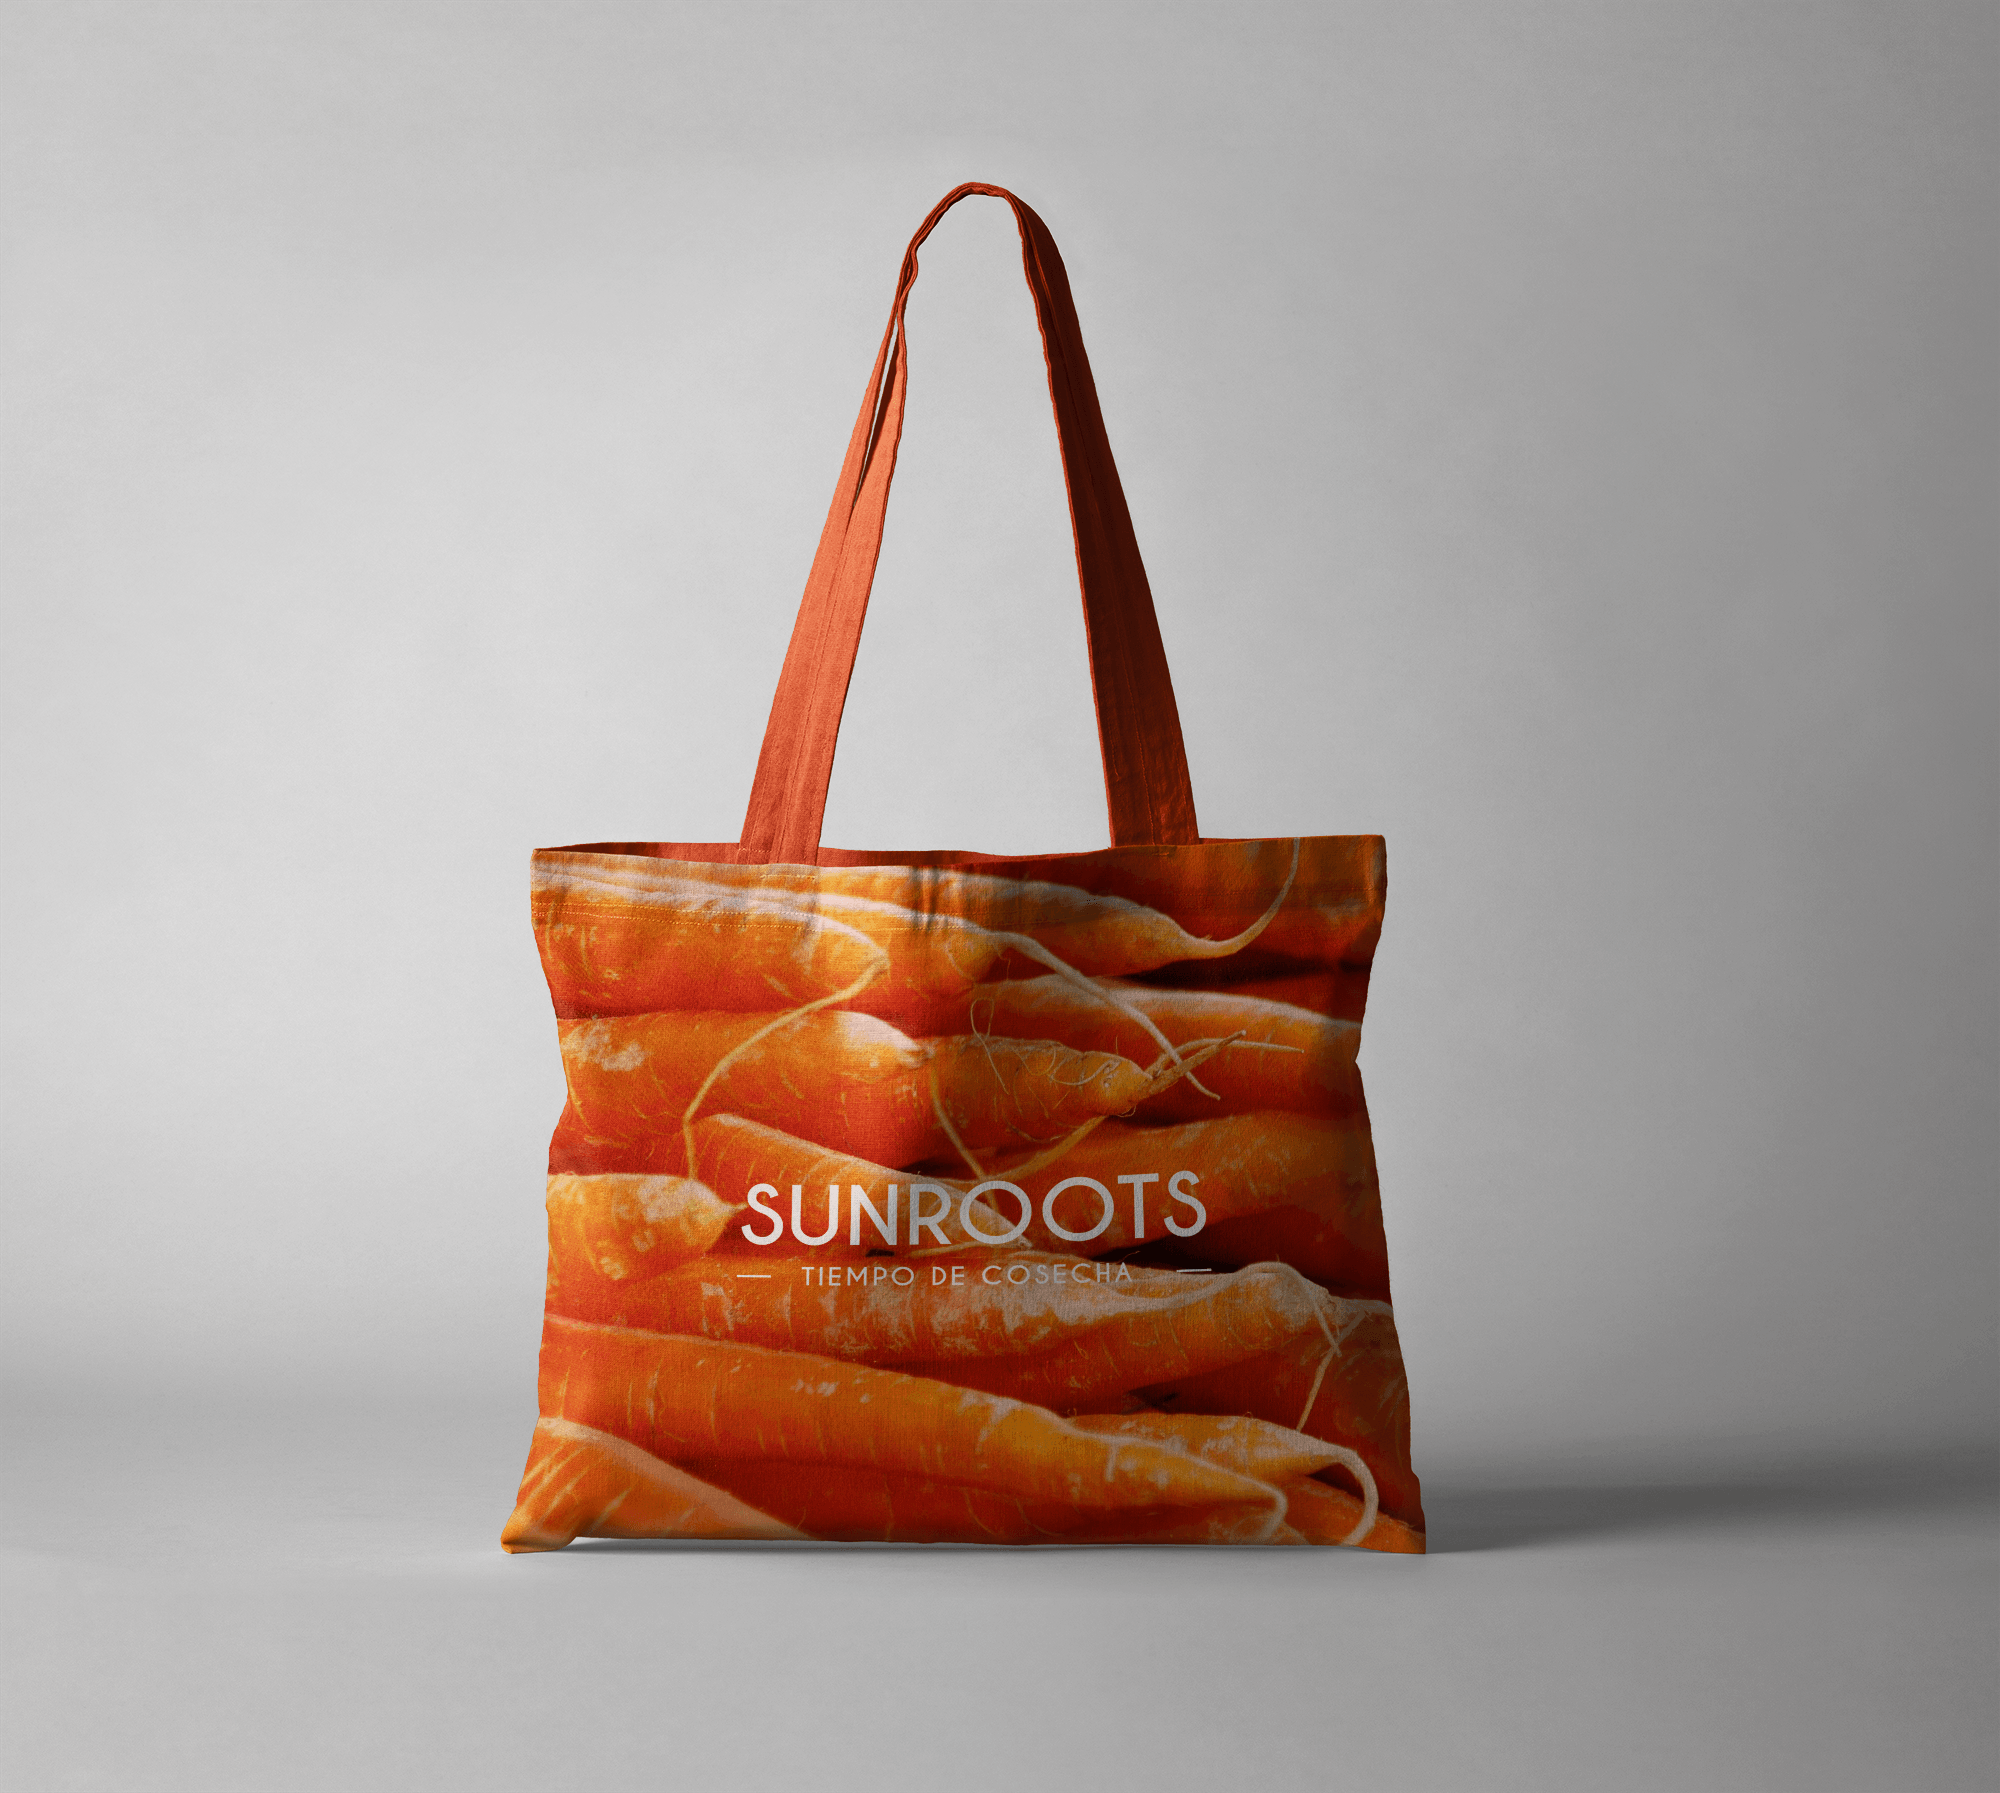 Tote-Bag-sunroots-carrots-yoenpaperland-compressor